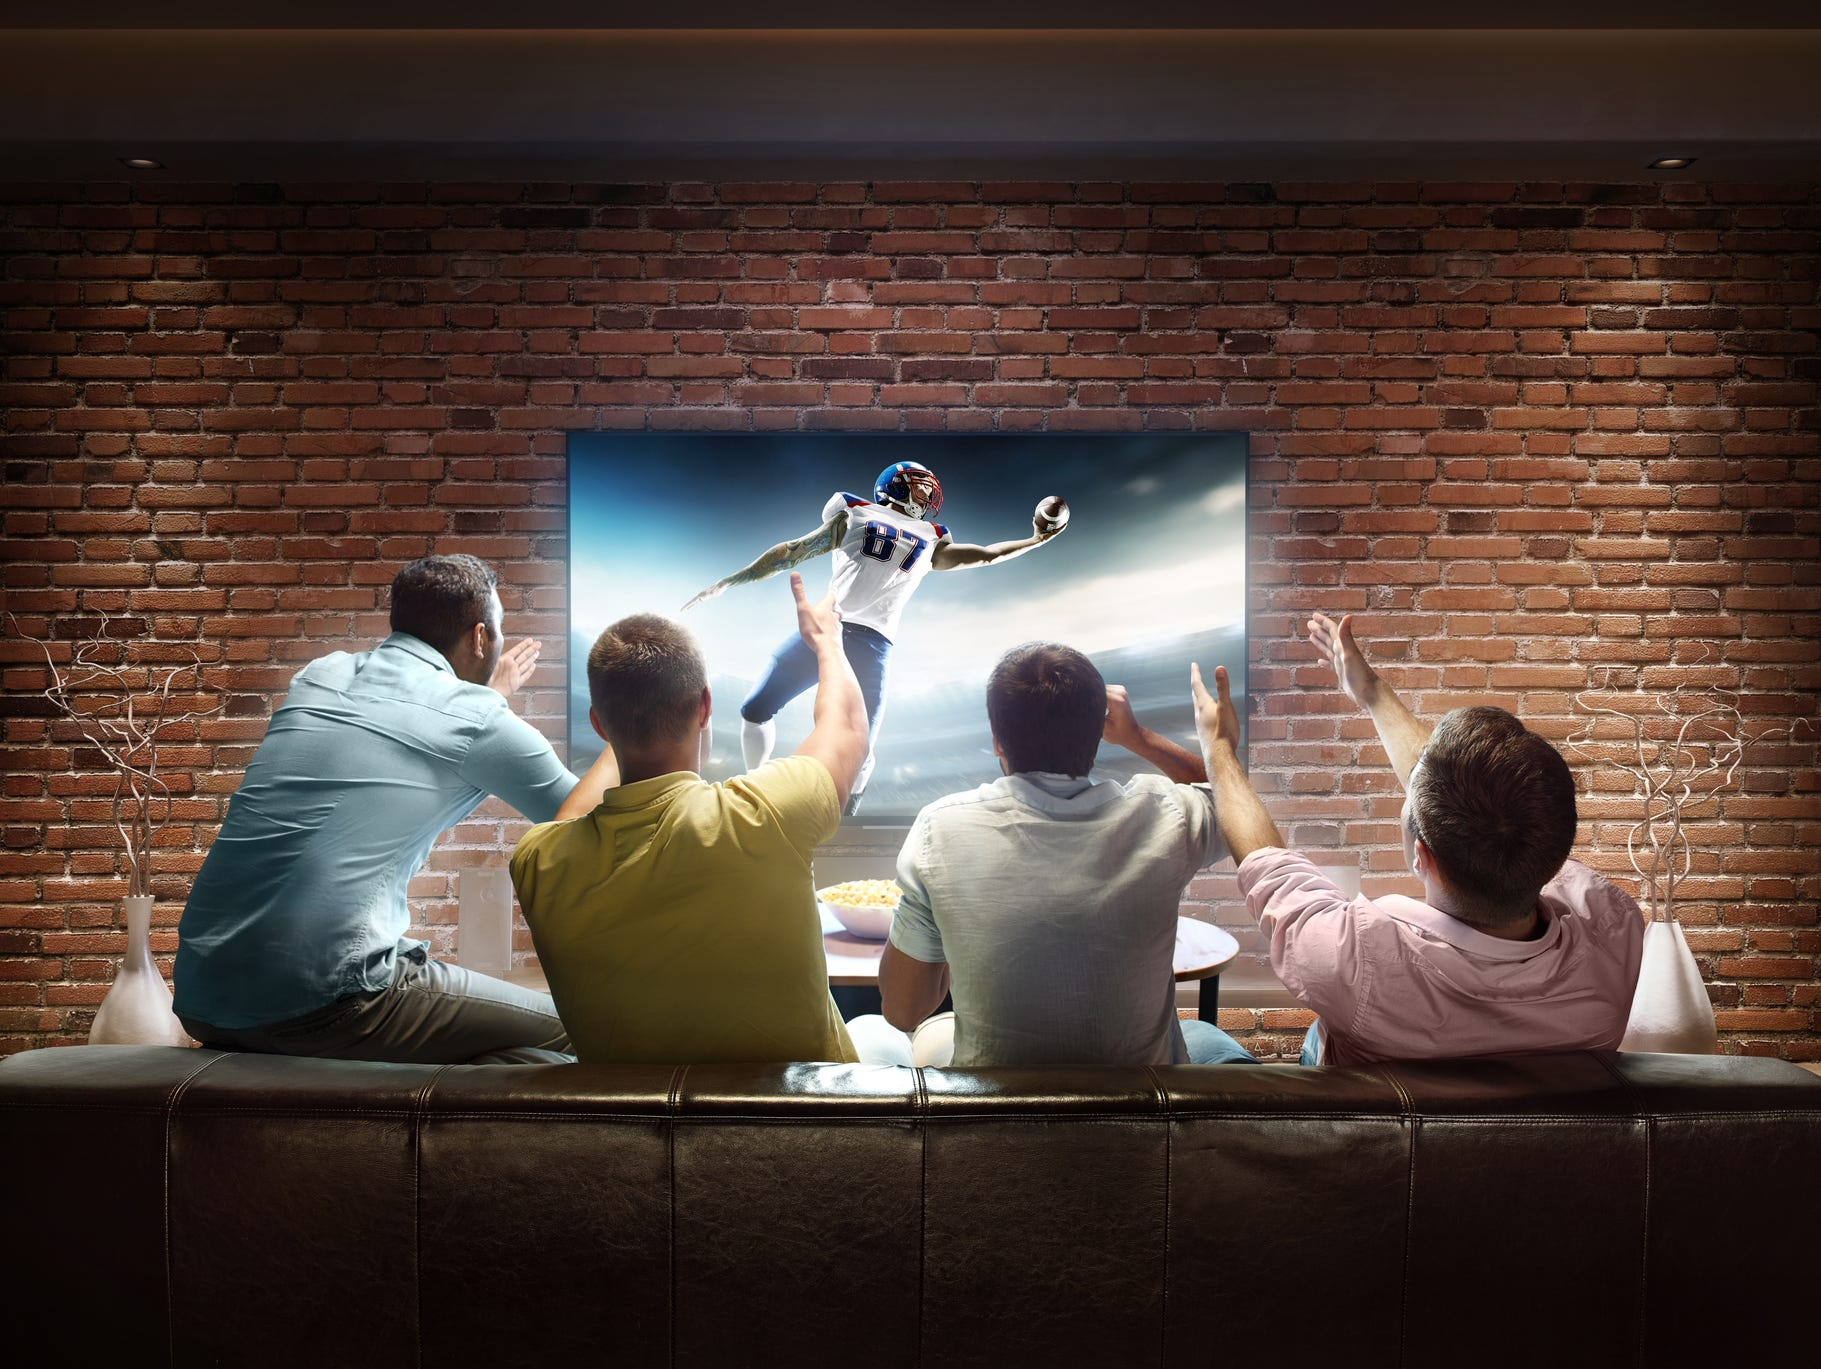 Impress your friends on February 4th with your brand new smart TV! Enter to win 12/26-1/21.